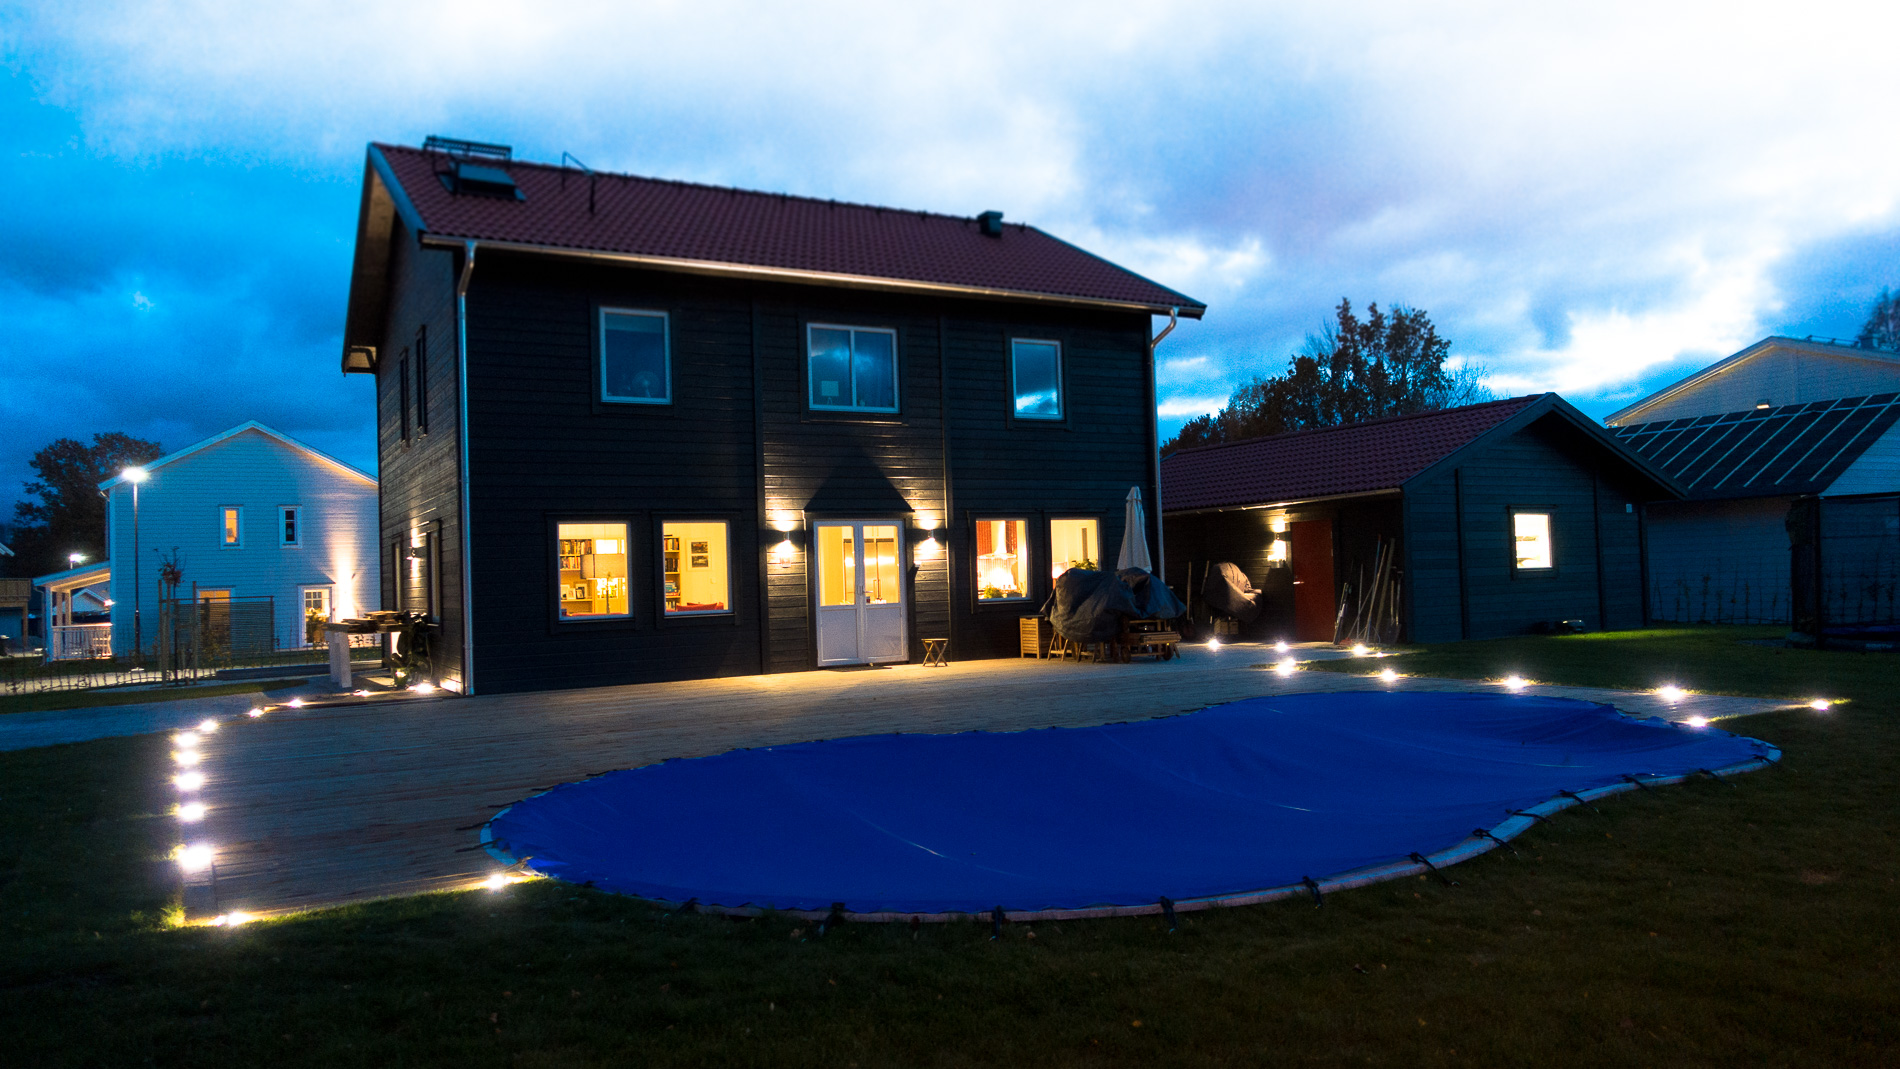 Final result pool and terrace by night with lightning